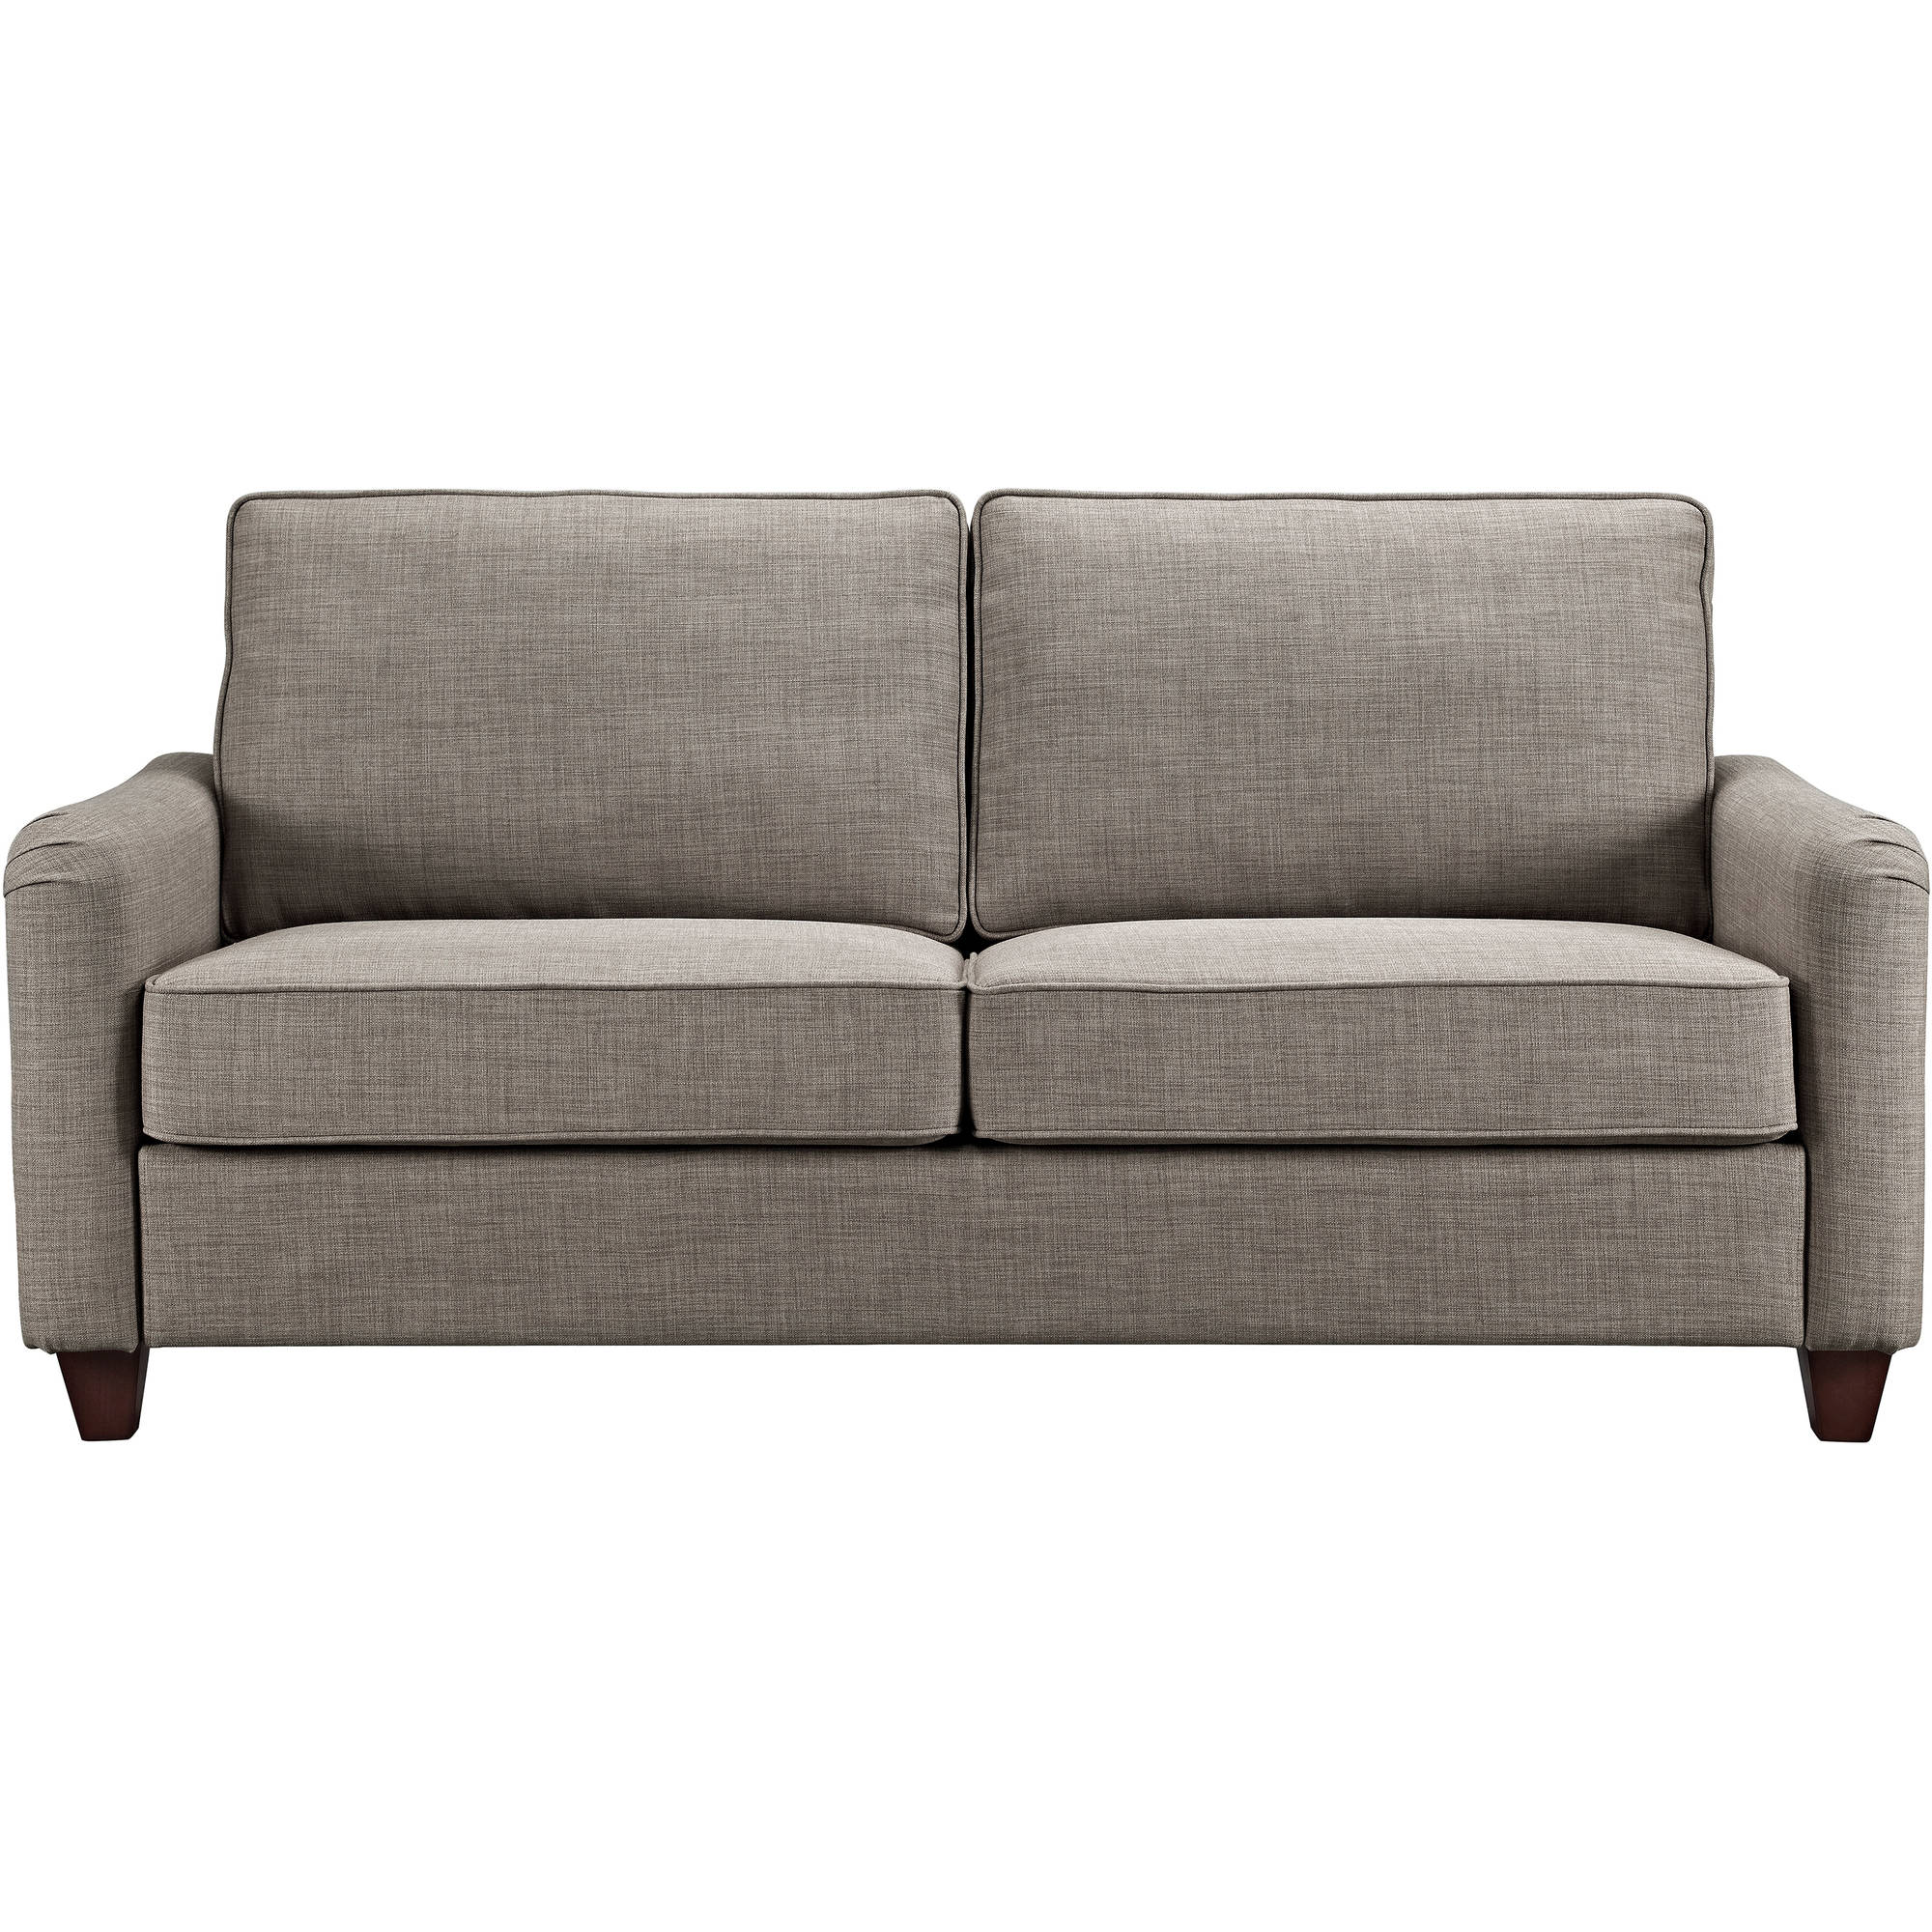 living room furniture | walmart